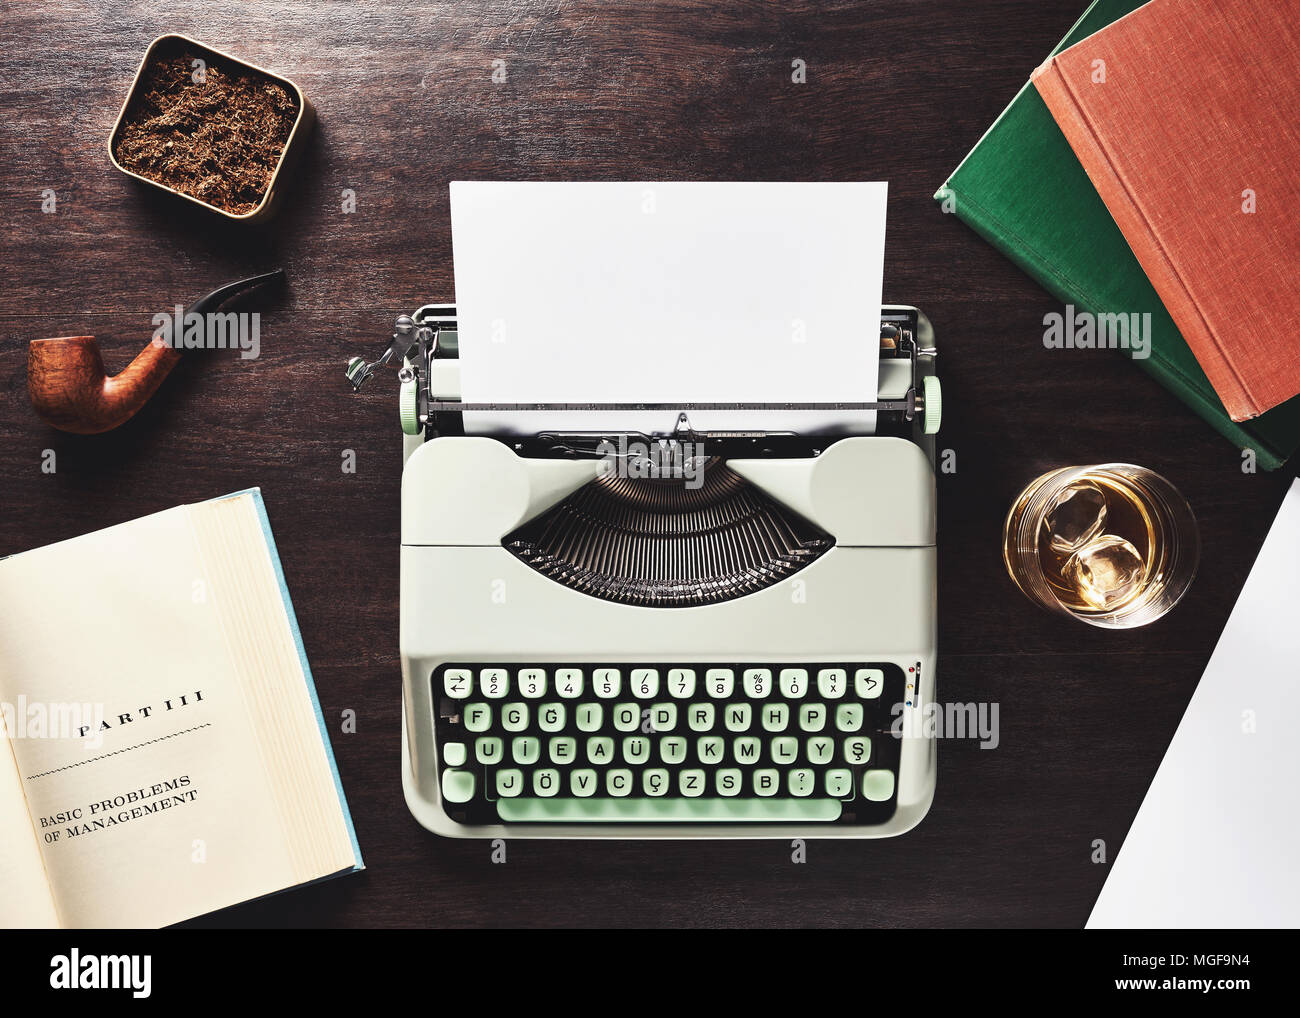 Business management problem solving. Vintage f type typewriter, blank paper, pipe, old books, tobacco box and a glass of whiskey on a wooden table - Stock Image